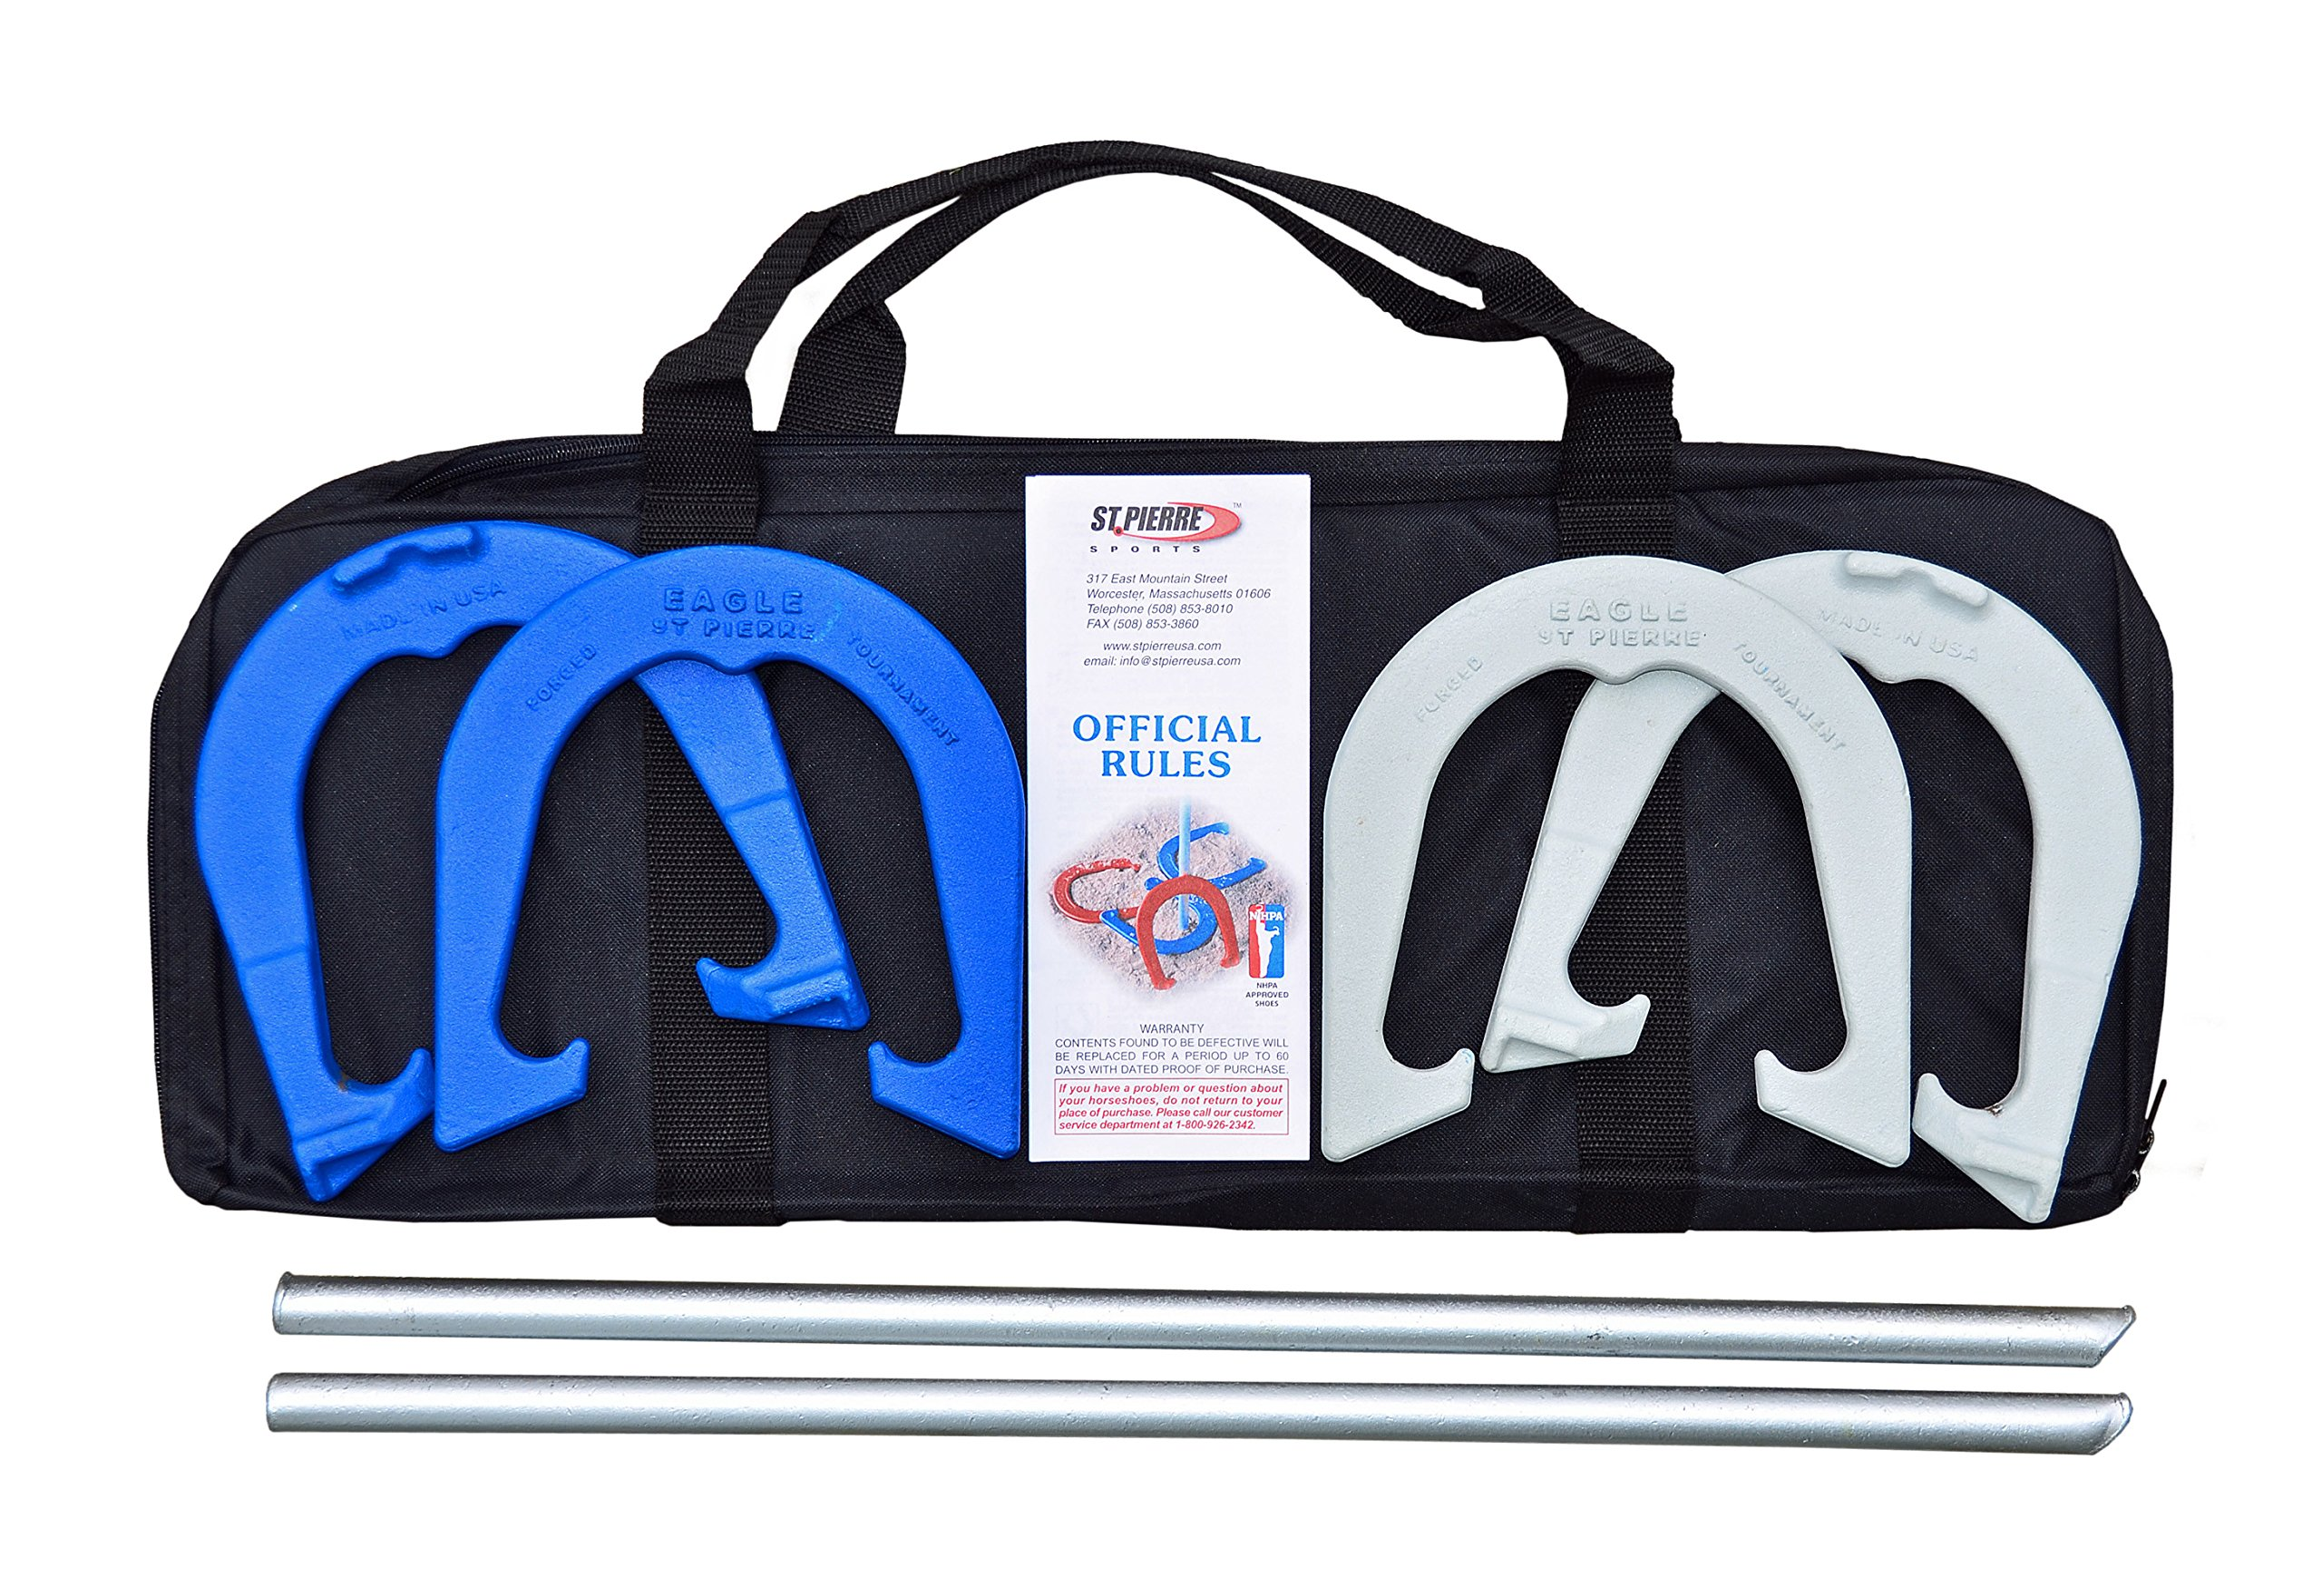 St Pierre Sports Eagle Tournament Horseshoe Outfit in Nylon Bag, Blue/Gray